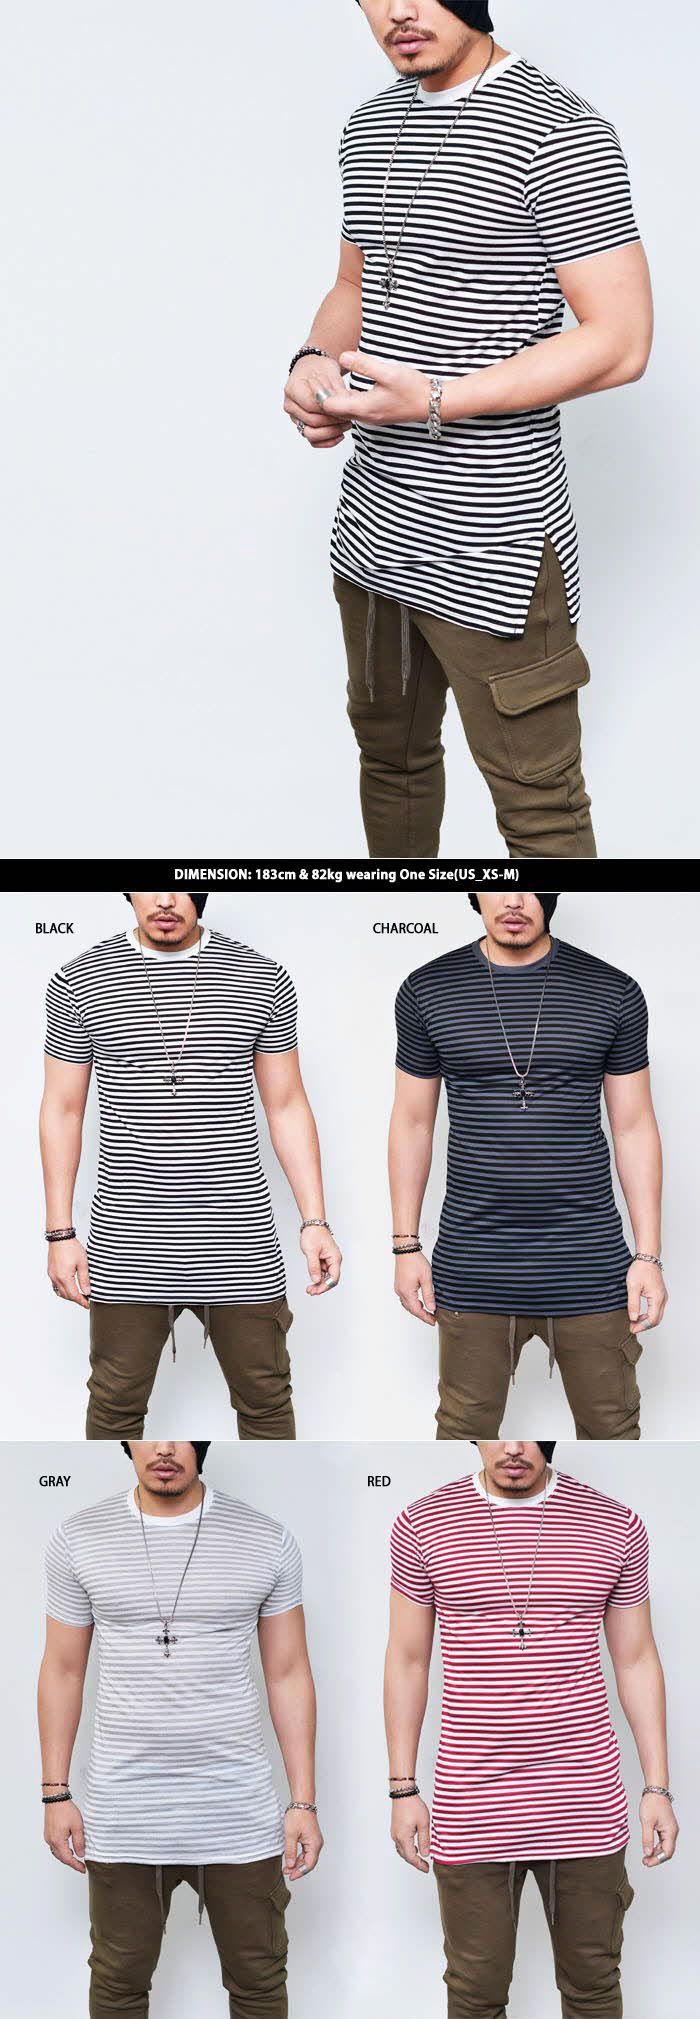 Tops :: Street Must Stripe Long Slit Round-Tee 493 - Mens Fashion Clothing For An Attractive Guy Look